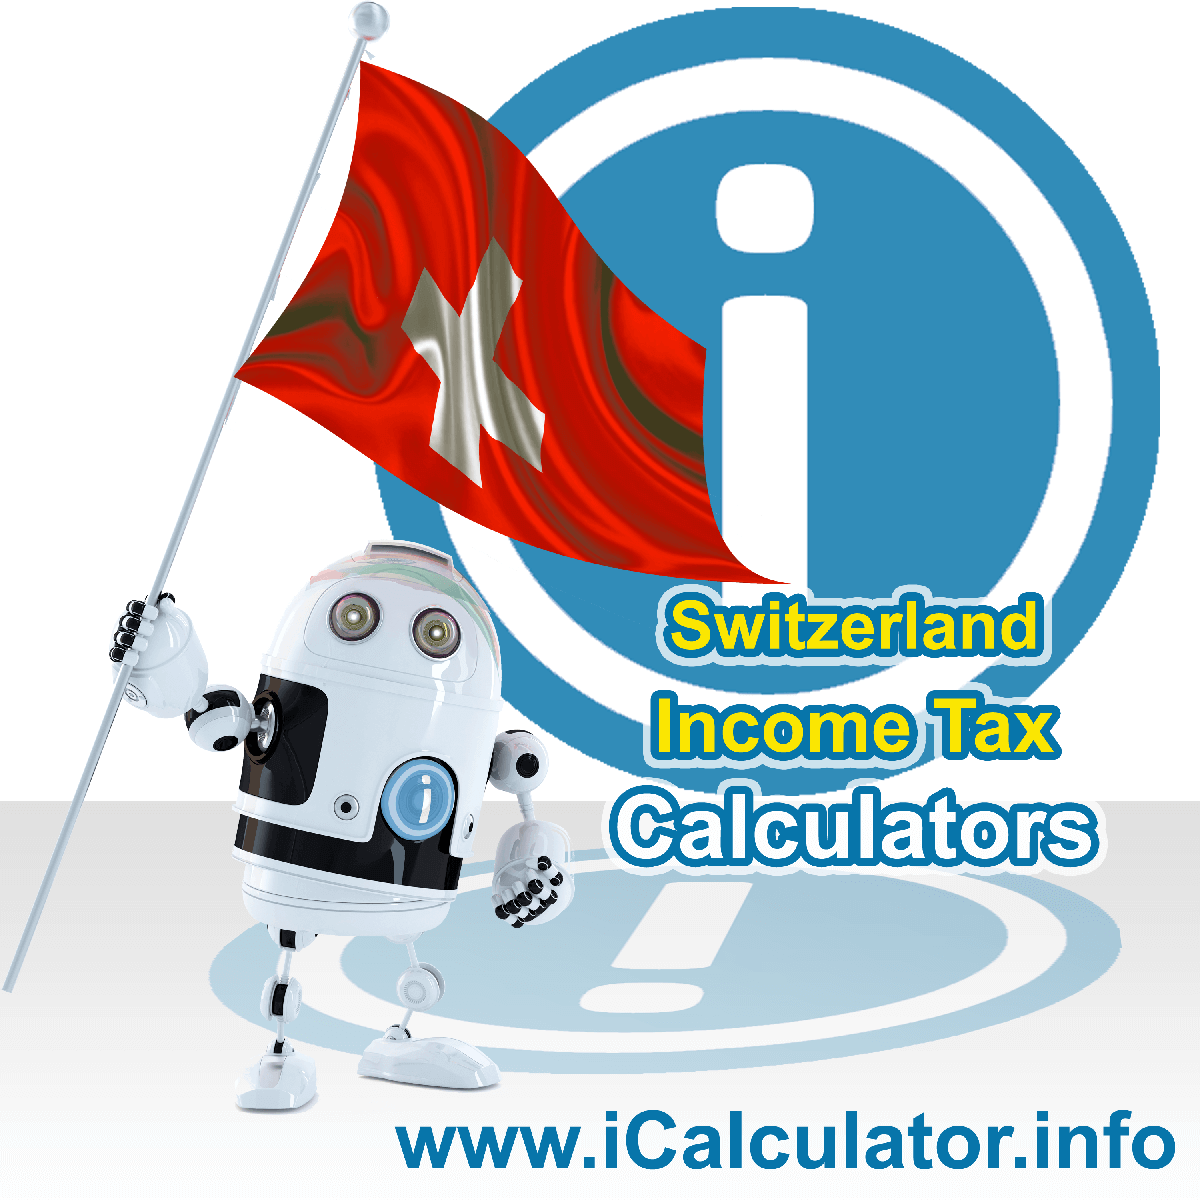 Switzerland Income Tax Calculator. This image shows a new employer in Switzerland calculating the annual payroll costs based on multiple payroll payments in one year in Switzerland using the Switzerland income tax calculator to understand their payroll costs in Switzerland in 2021